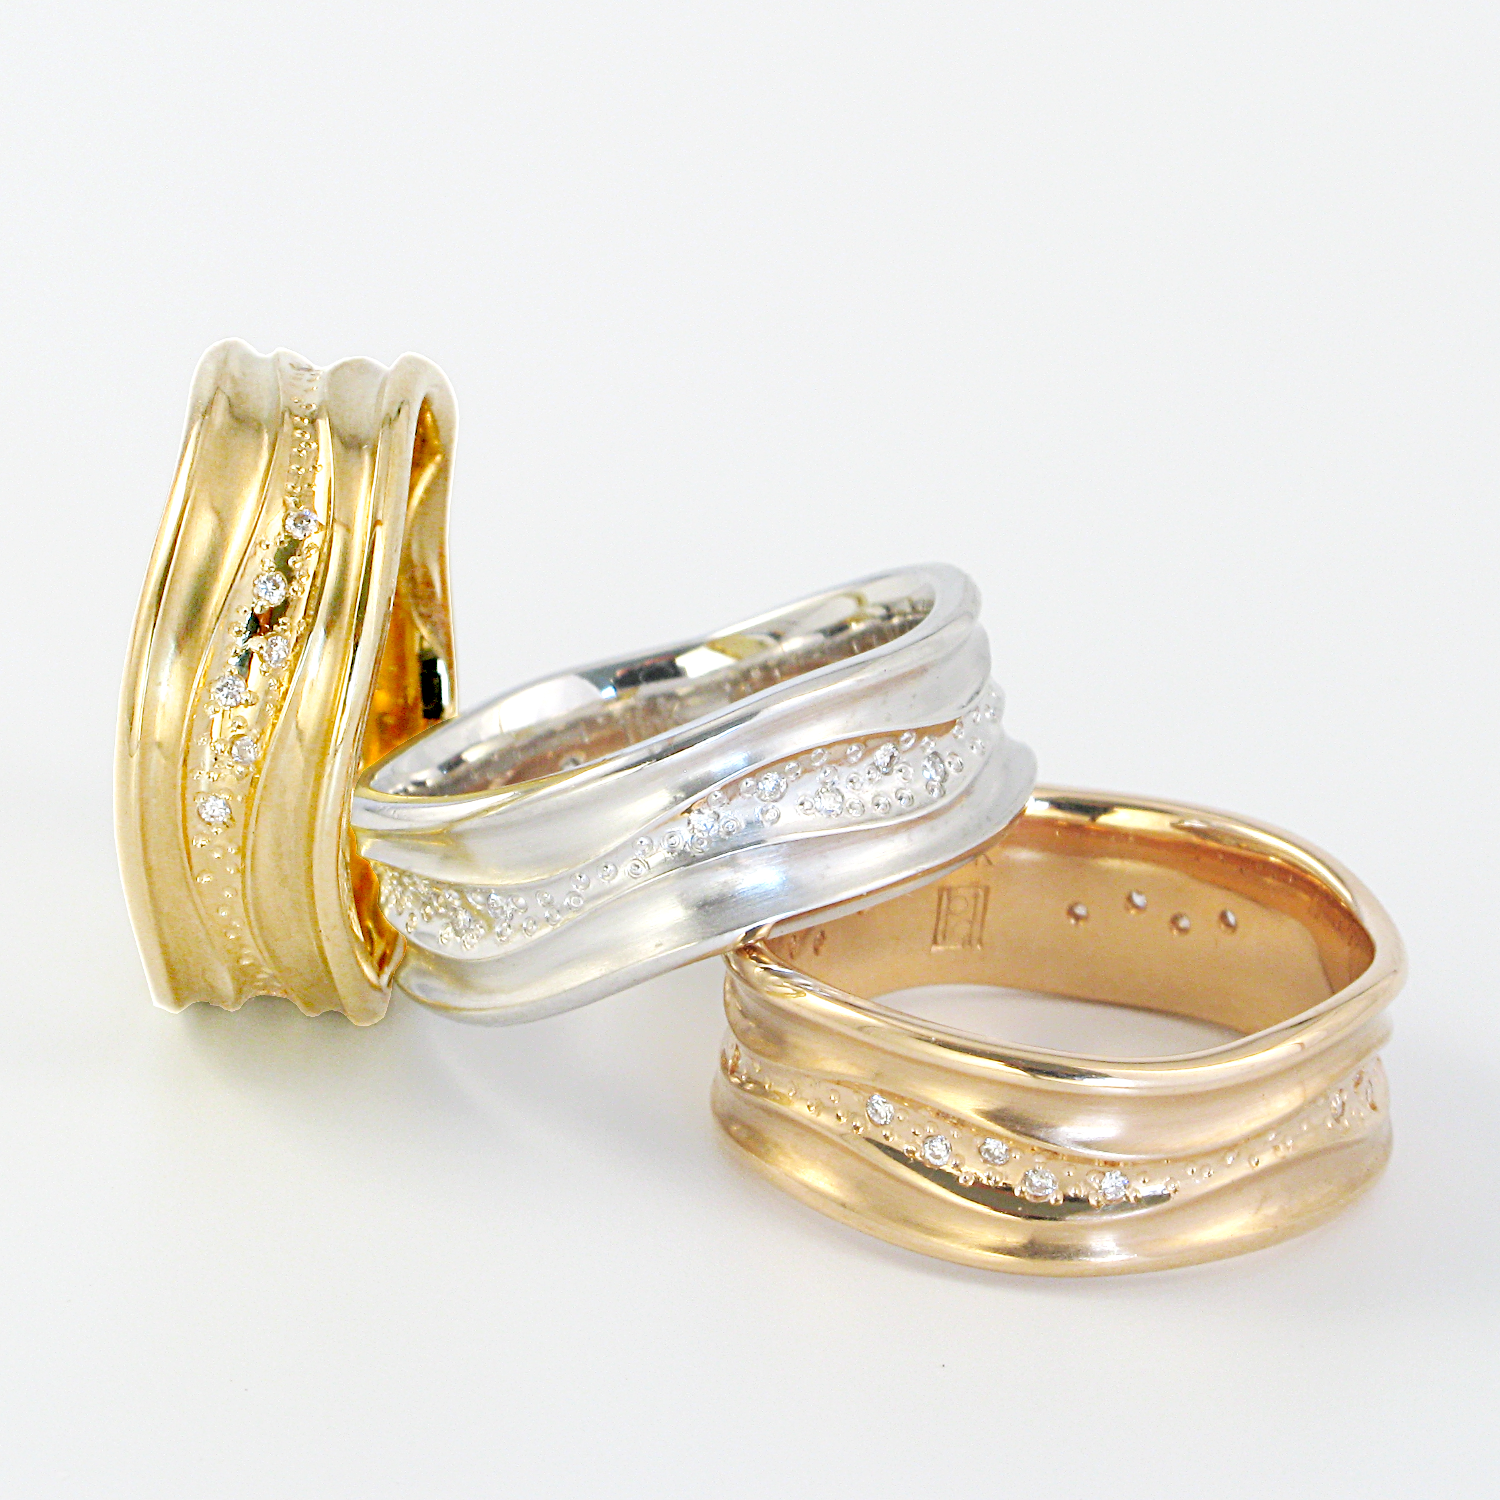 Contemporary wedding bands in 18k yellow, rose or white gold 'Stardust' with diamonds by Pratima Design Fine Art Jewelry